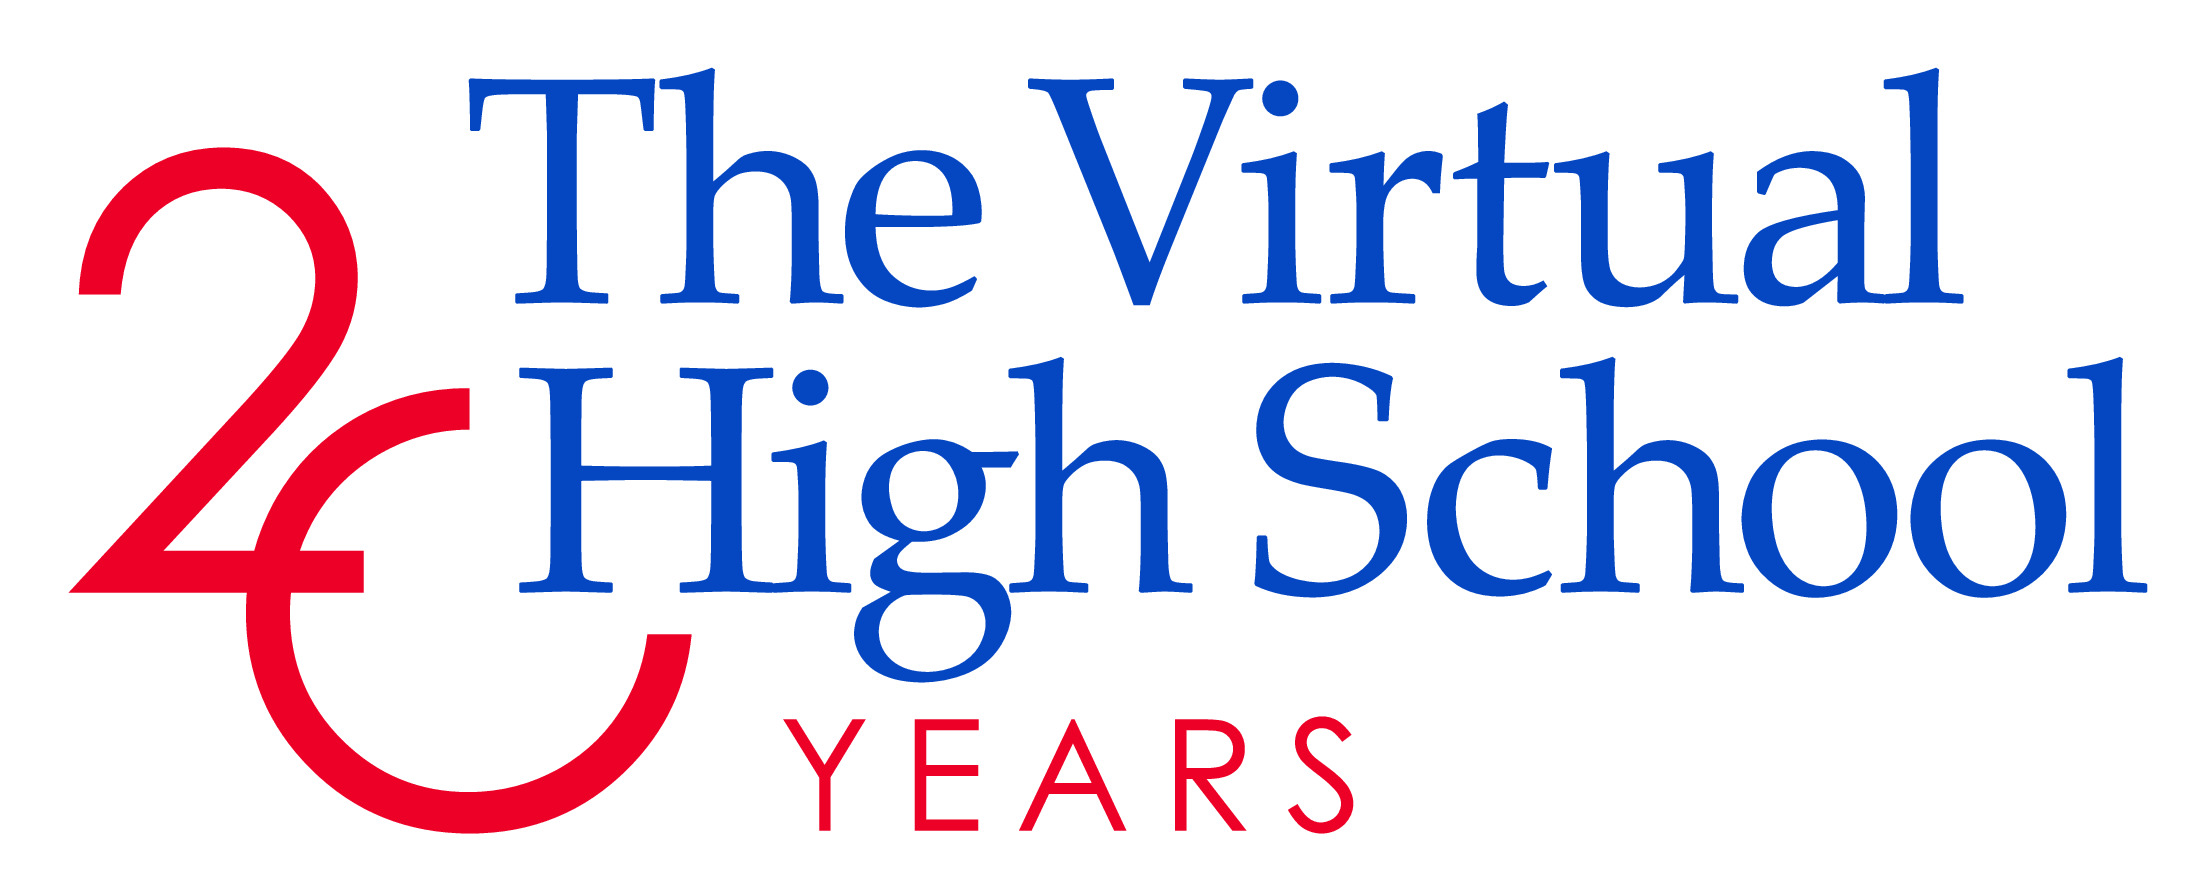 The Virtual High School logo